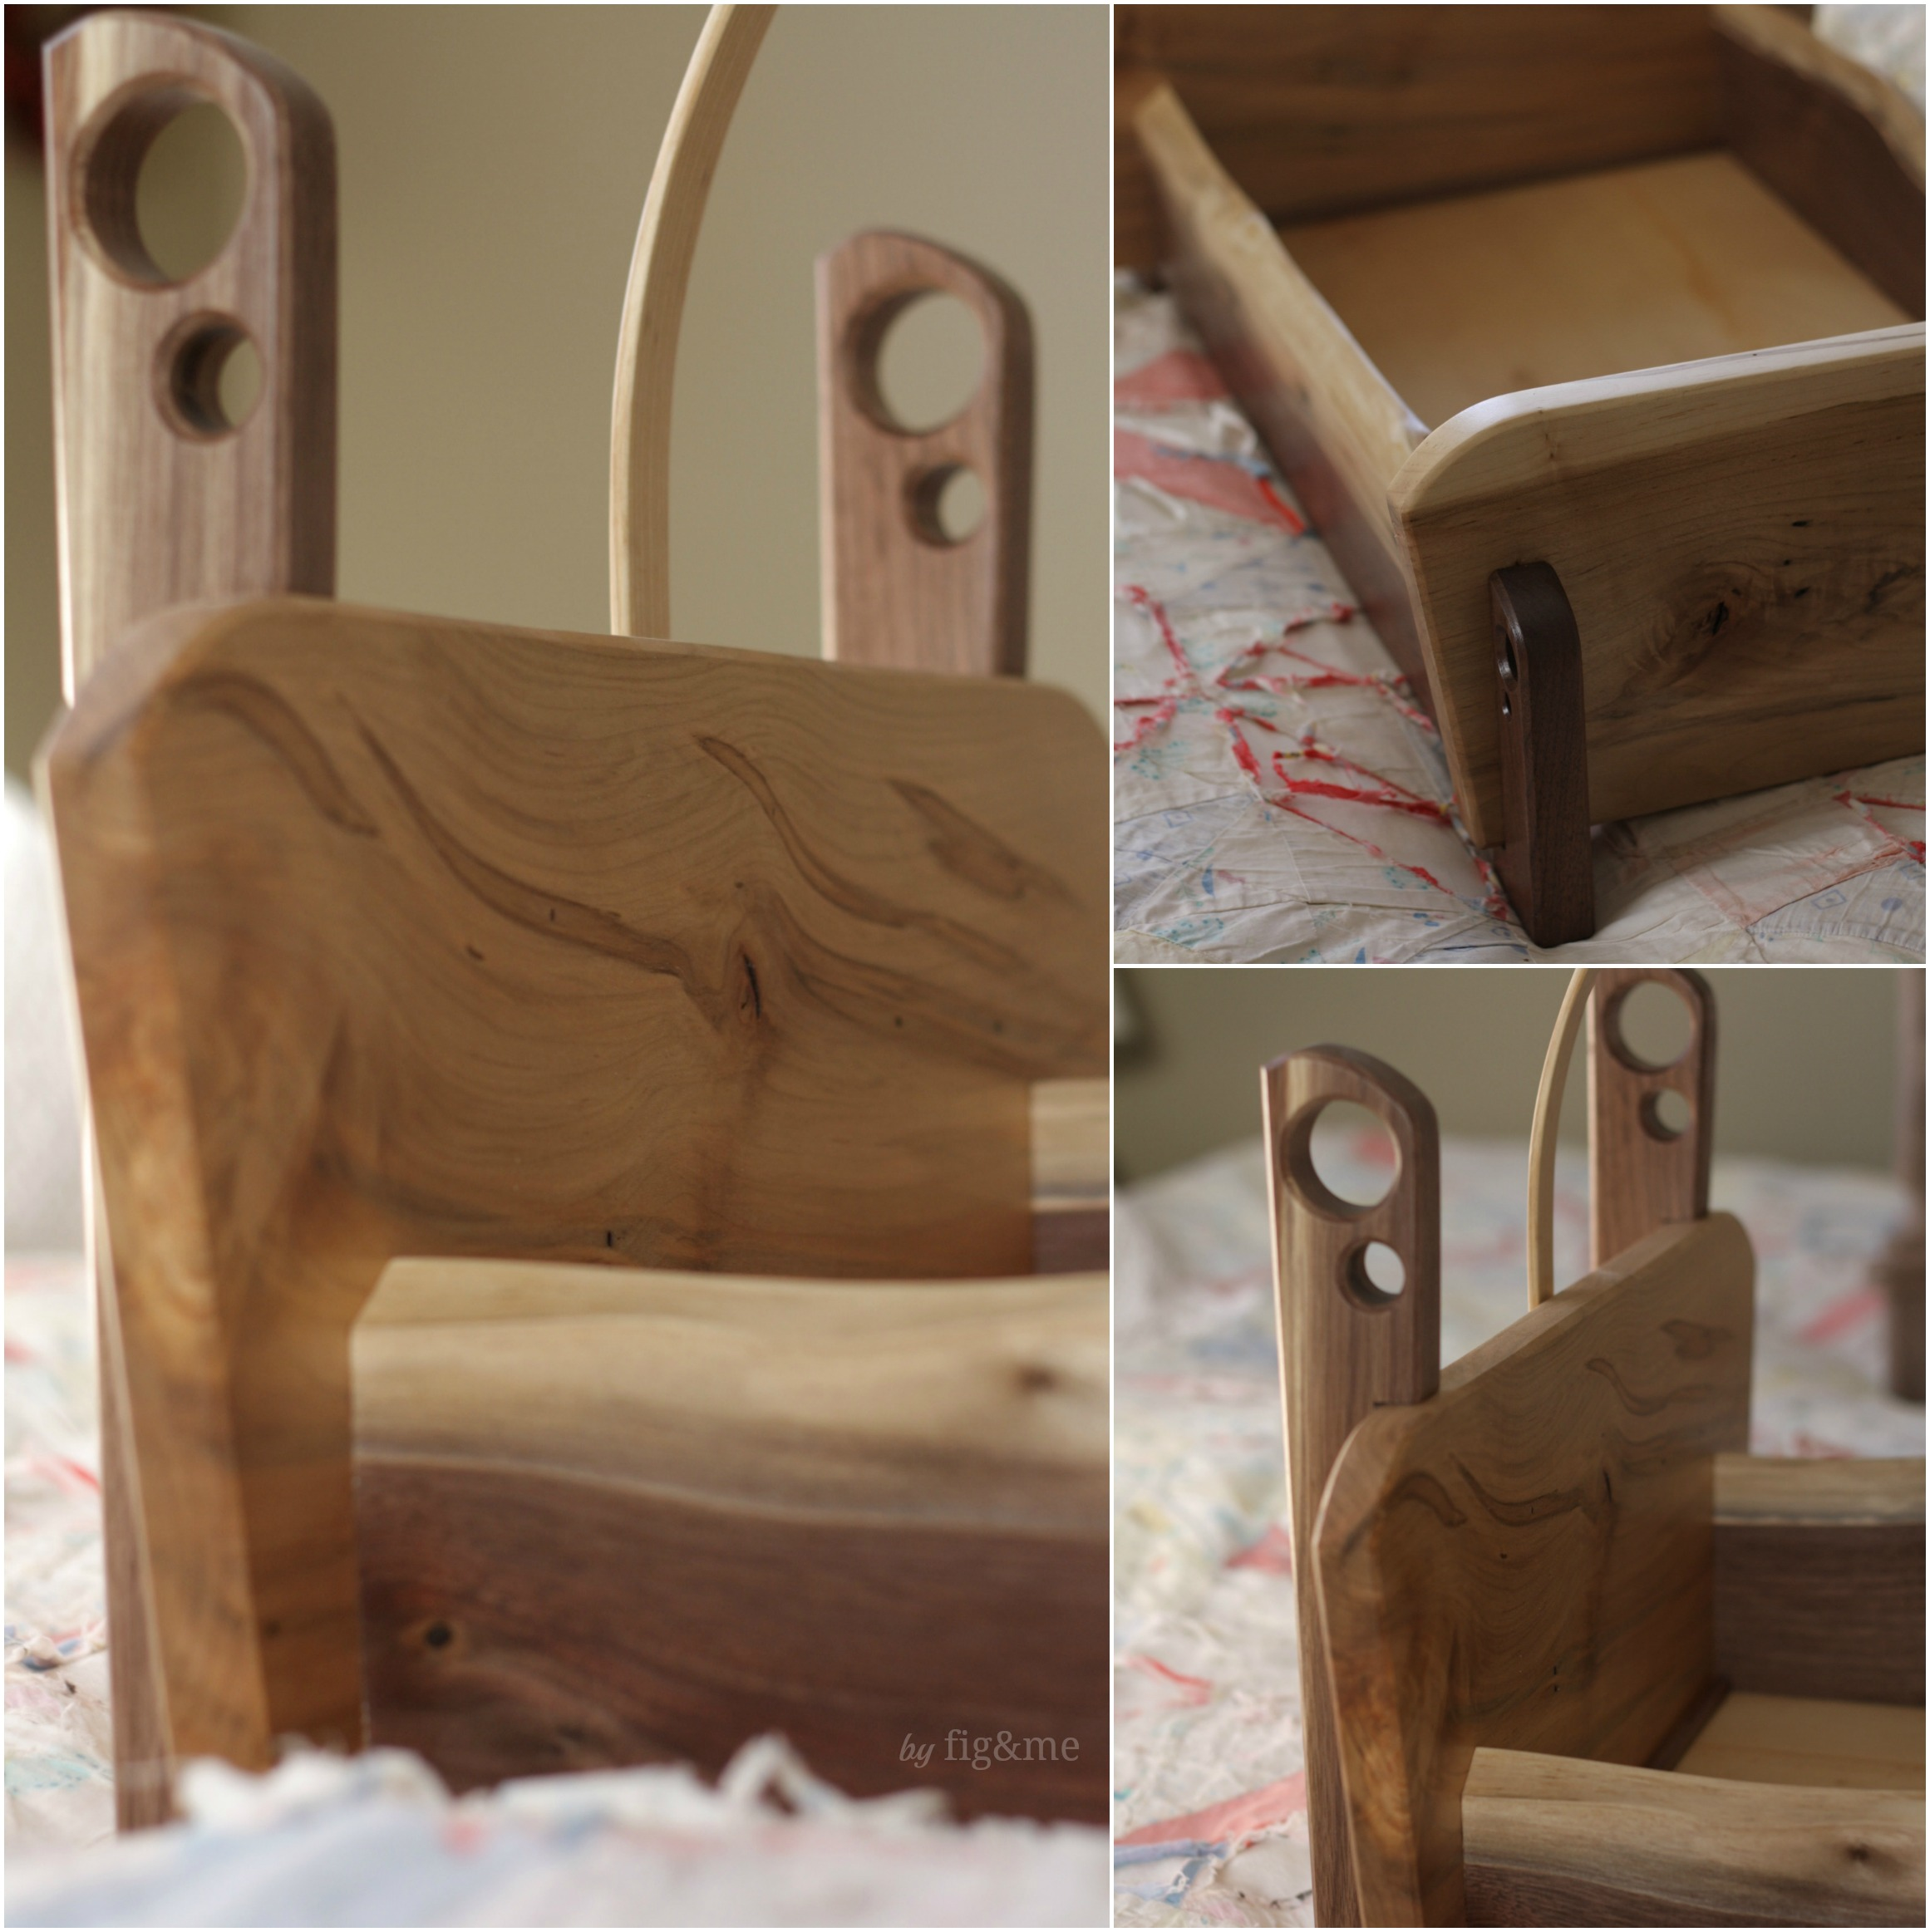 Ambrosia Maple and Walnut doll crib, by Fig&me.